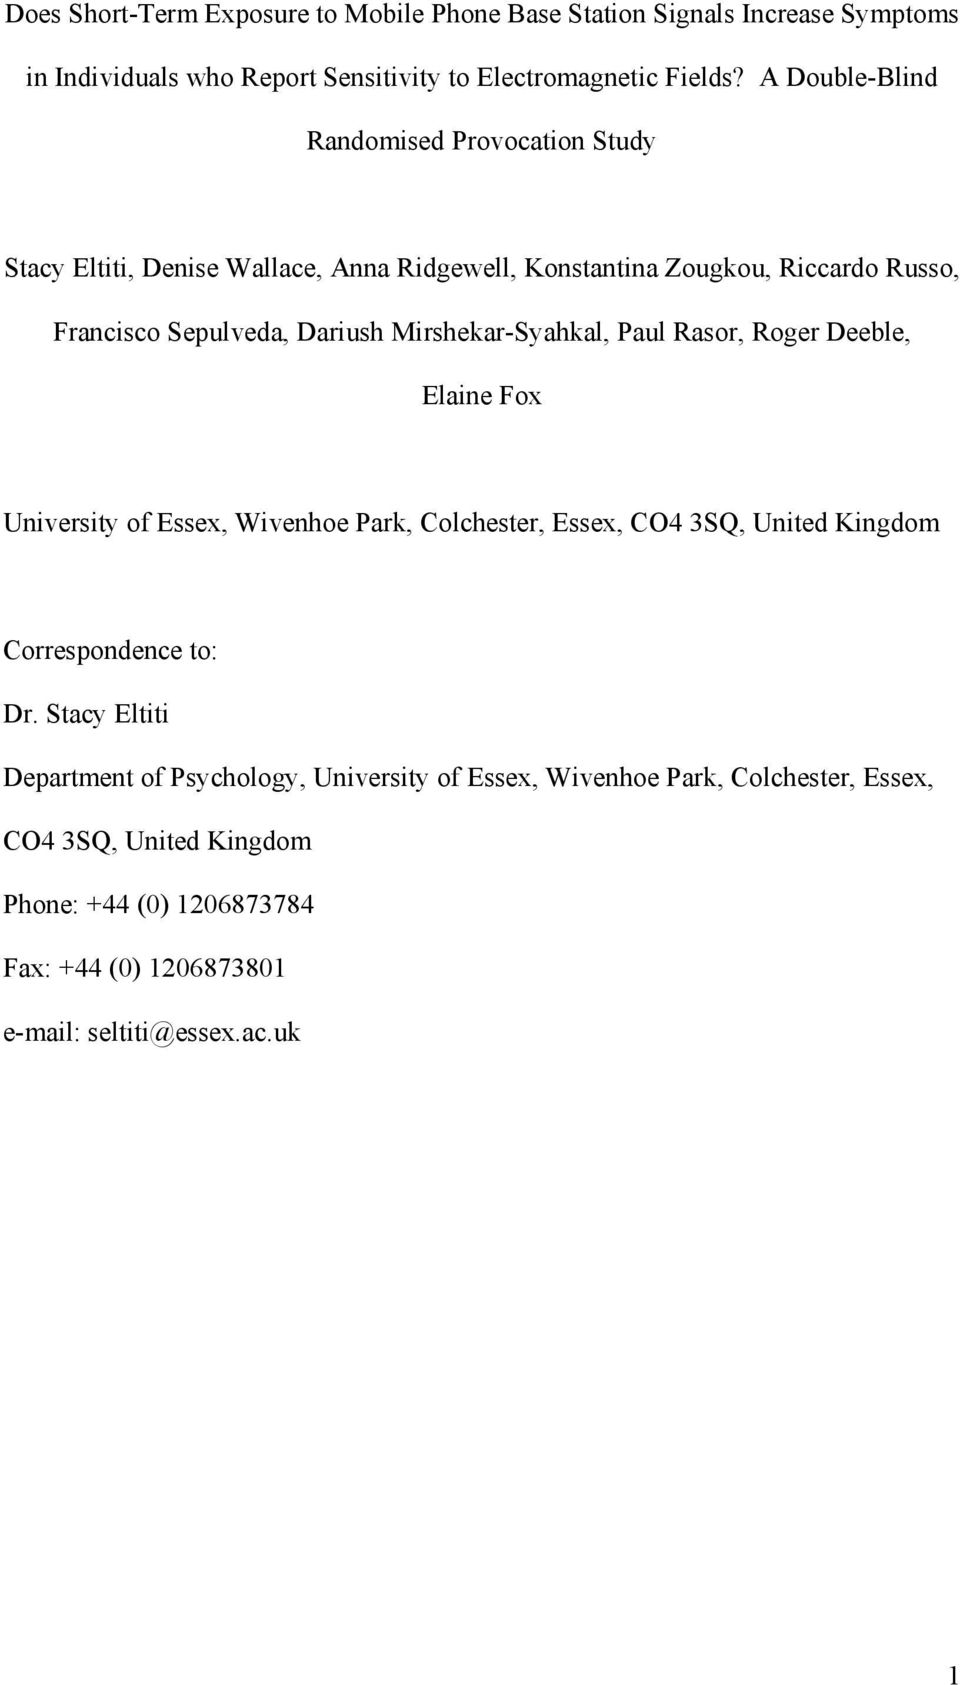 Mirshekar-Syahkal, Paul Rasor, Roger Deeble, Elaine Fox University of Essex, Wivenhoe Park, Colchester, Essex, CO4 3SQ, United Kingdom Correspondence to: Dr.